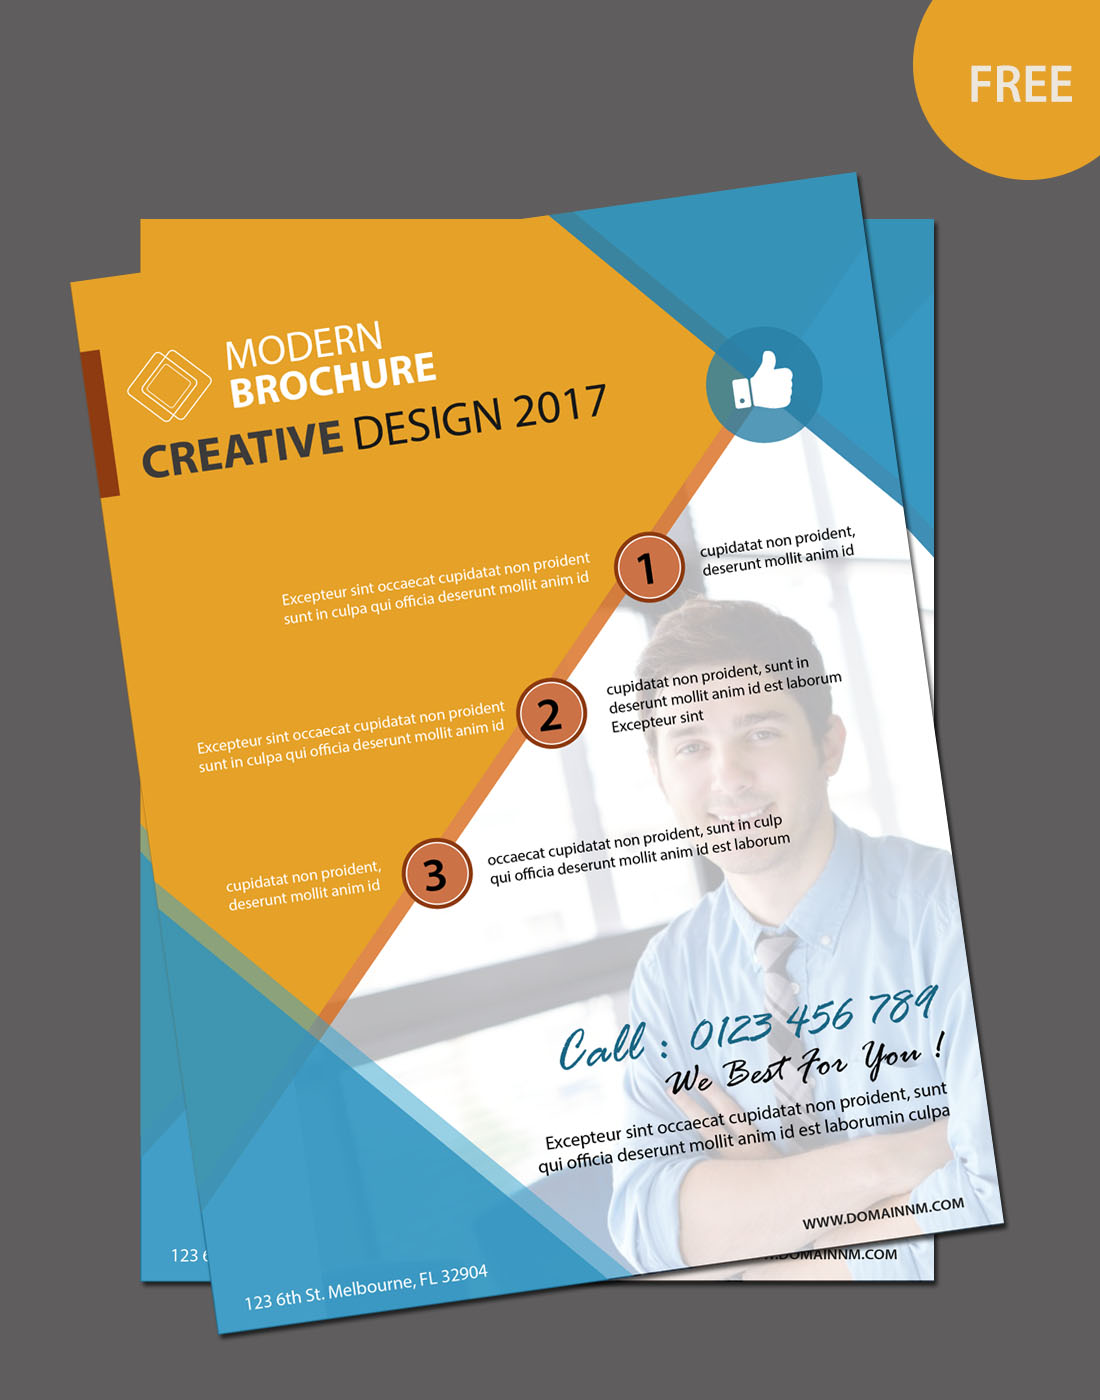 online brochure design - free editable brochure template